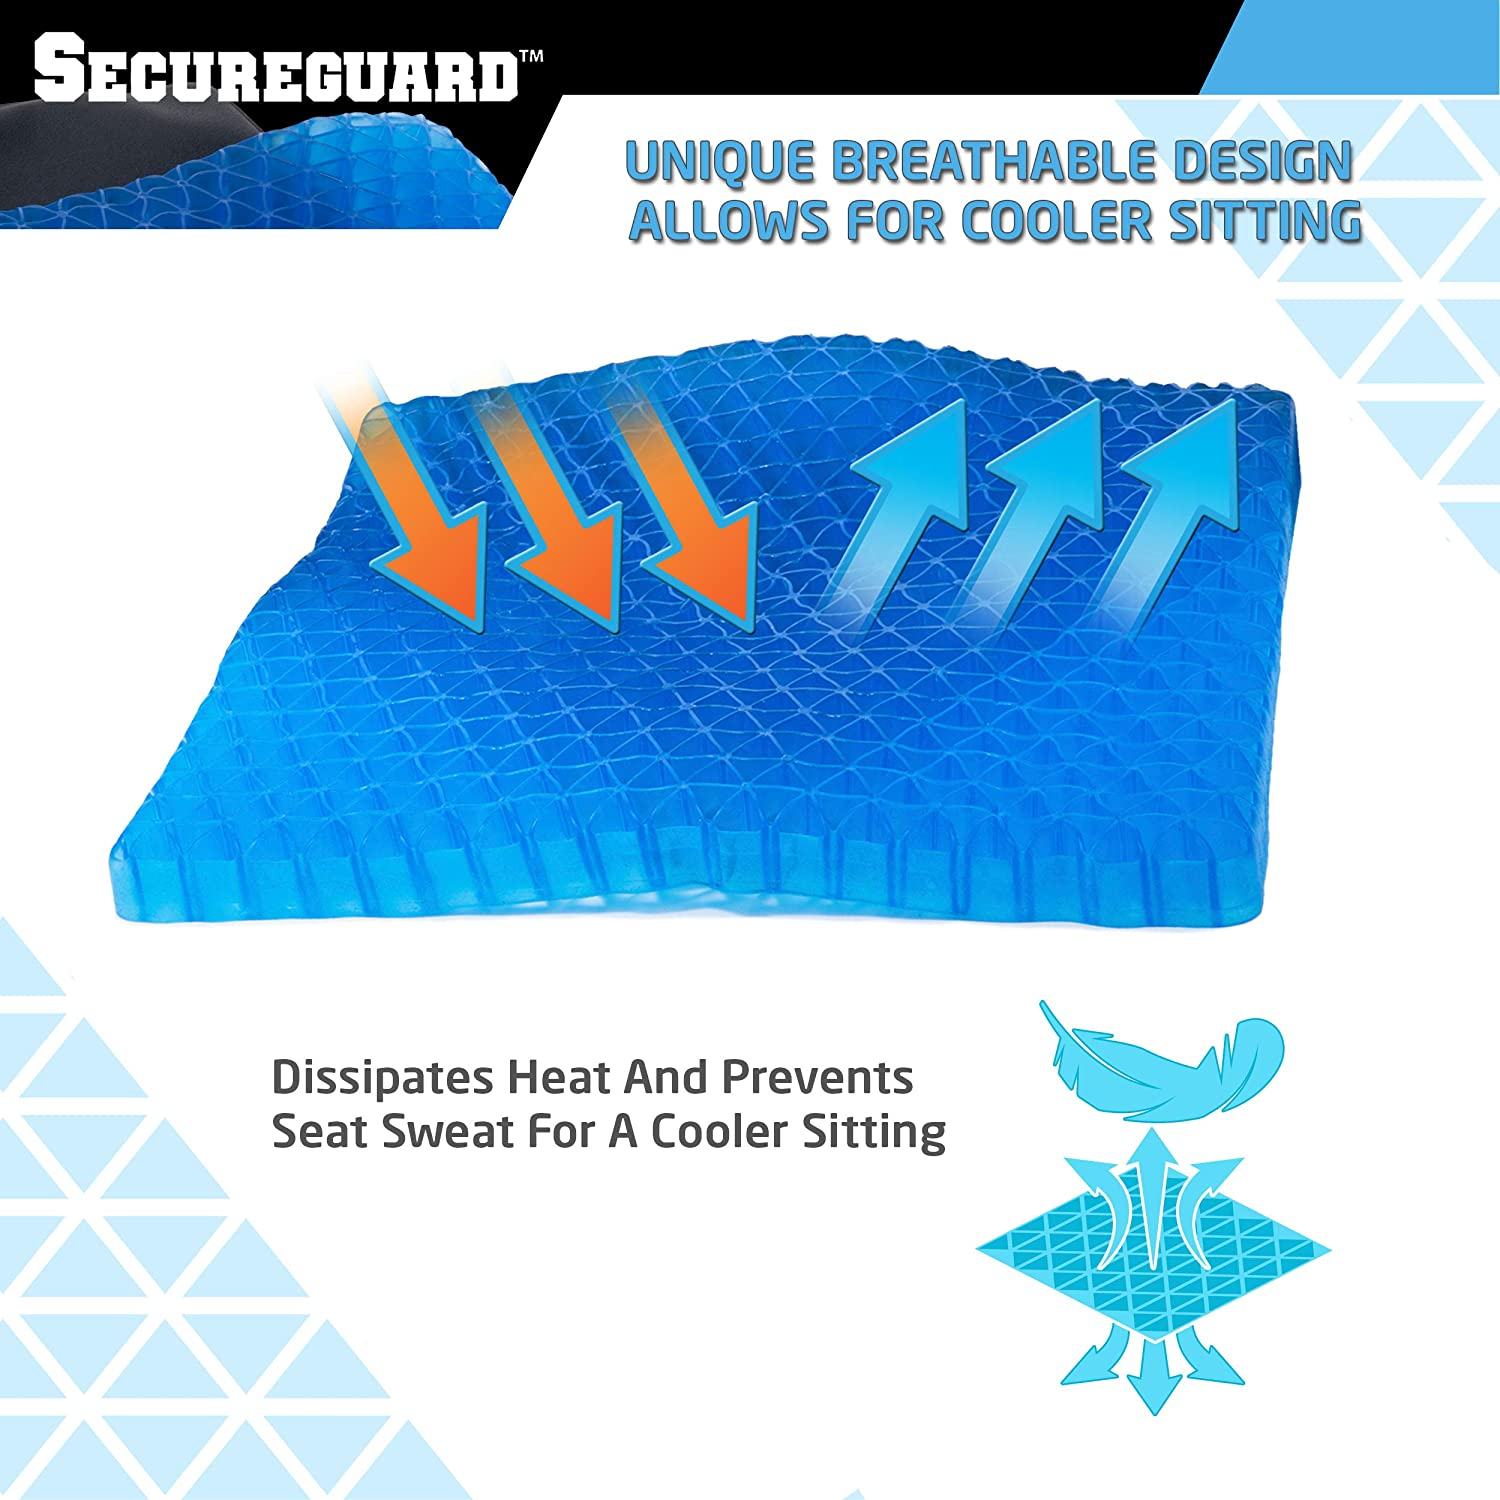 Includes Carrying Case by Secureguard Tailbone Gel Seat Cushion Durable Portable Office Chair Car Seat Cushion Supports Lower Back Promotes Circulation /& Good Sitting Posture Spine /& Hips